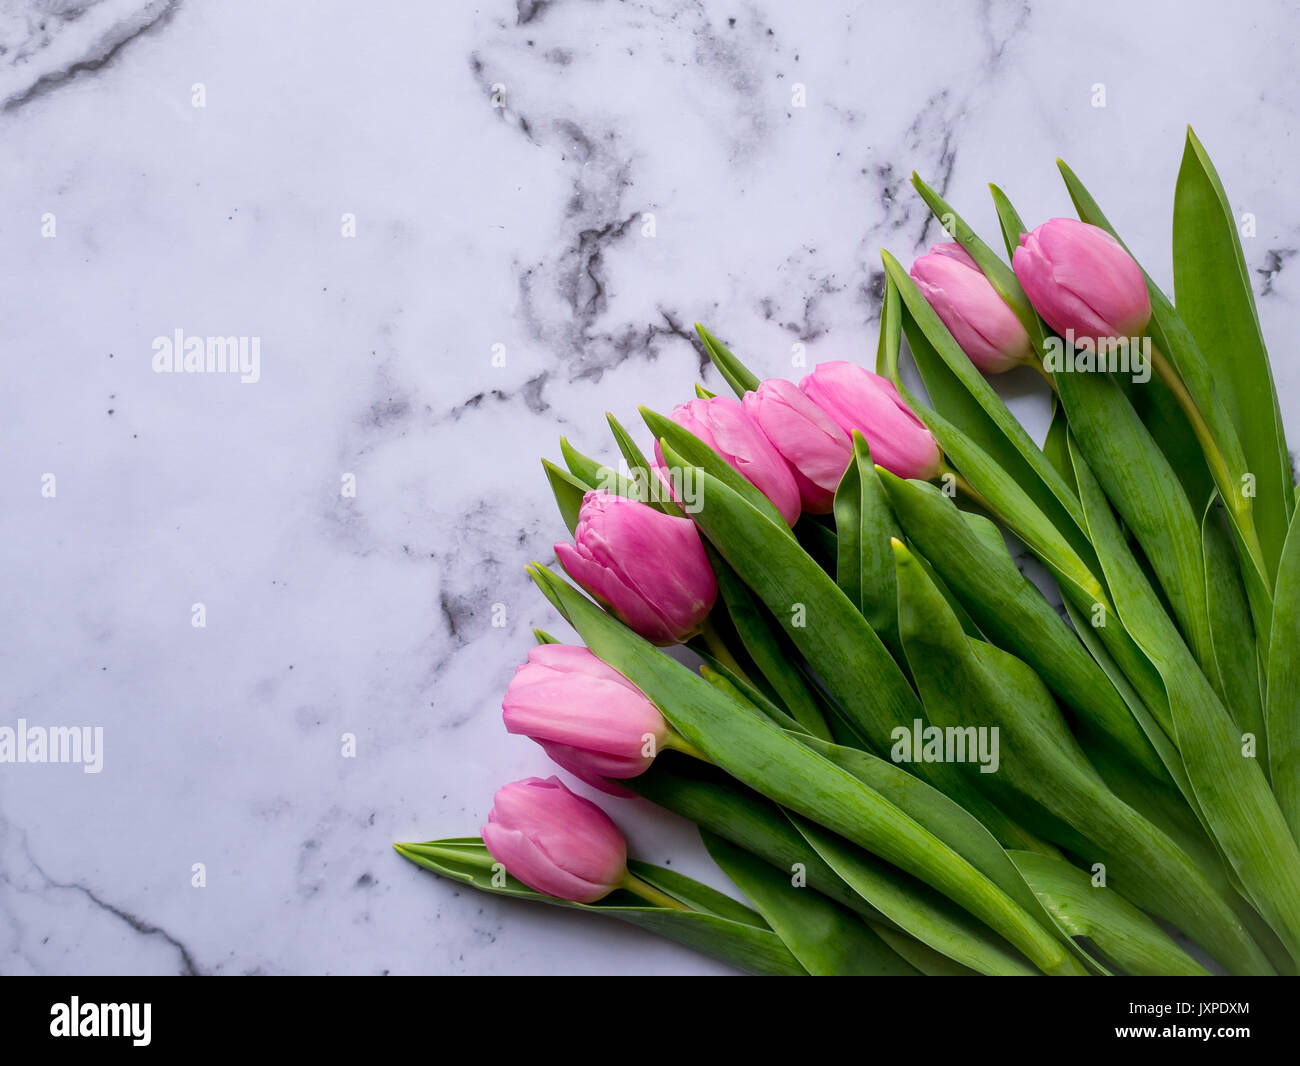 Bunch of pink tulips on a marble table. Flat lay. Landscape format. - Stock Image